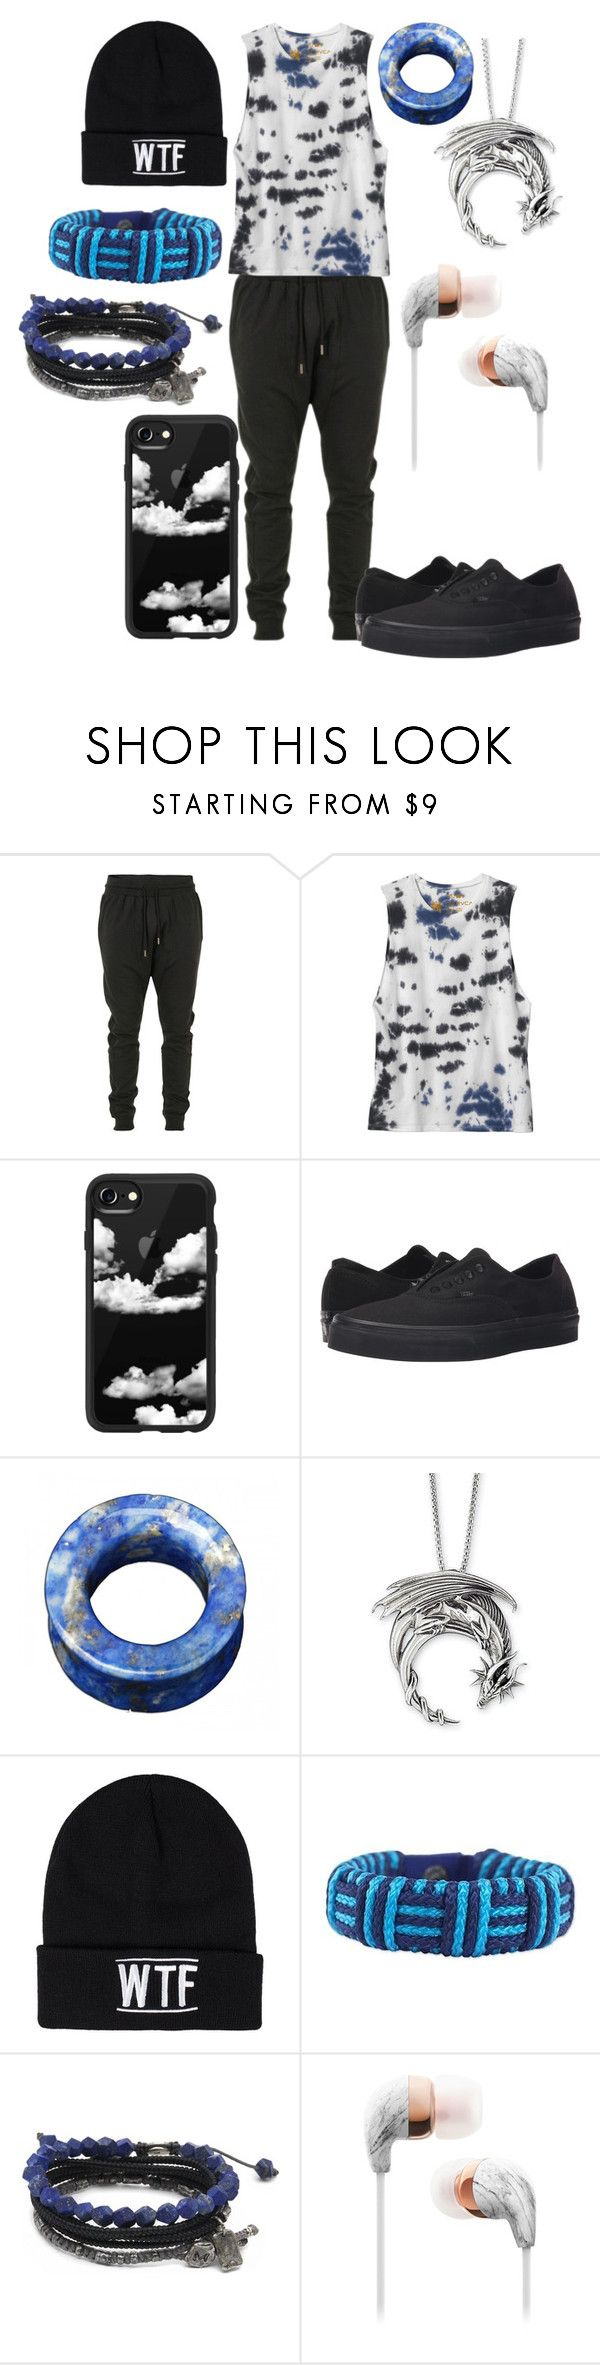 """""""Untitled #748"""" by dino-satan666 ❤ liked on Polyvore featuring Blood Brother, RVCA, Casetify, Vans, Sally&Circle, NOVICA, M. Cohen, men's fashion and menswear"""